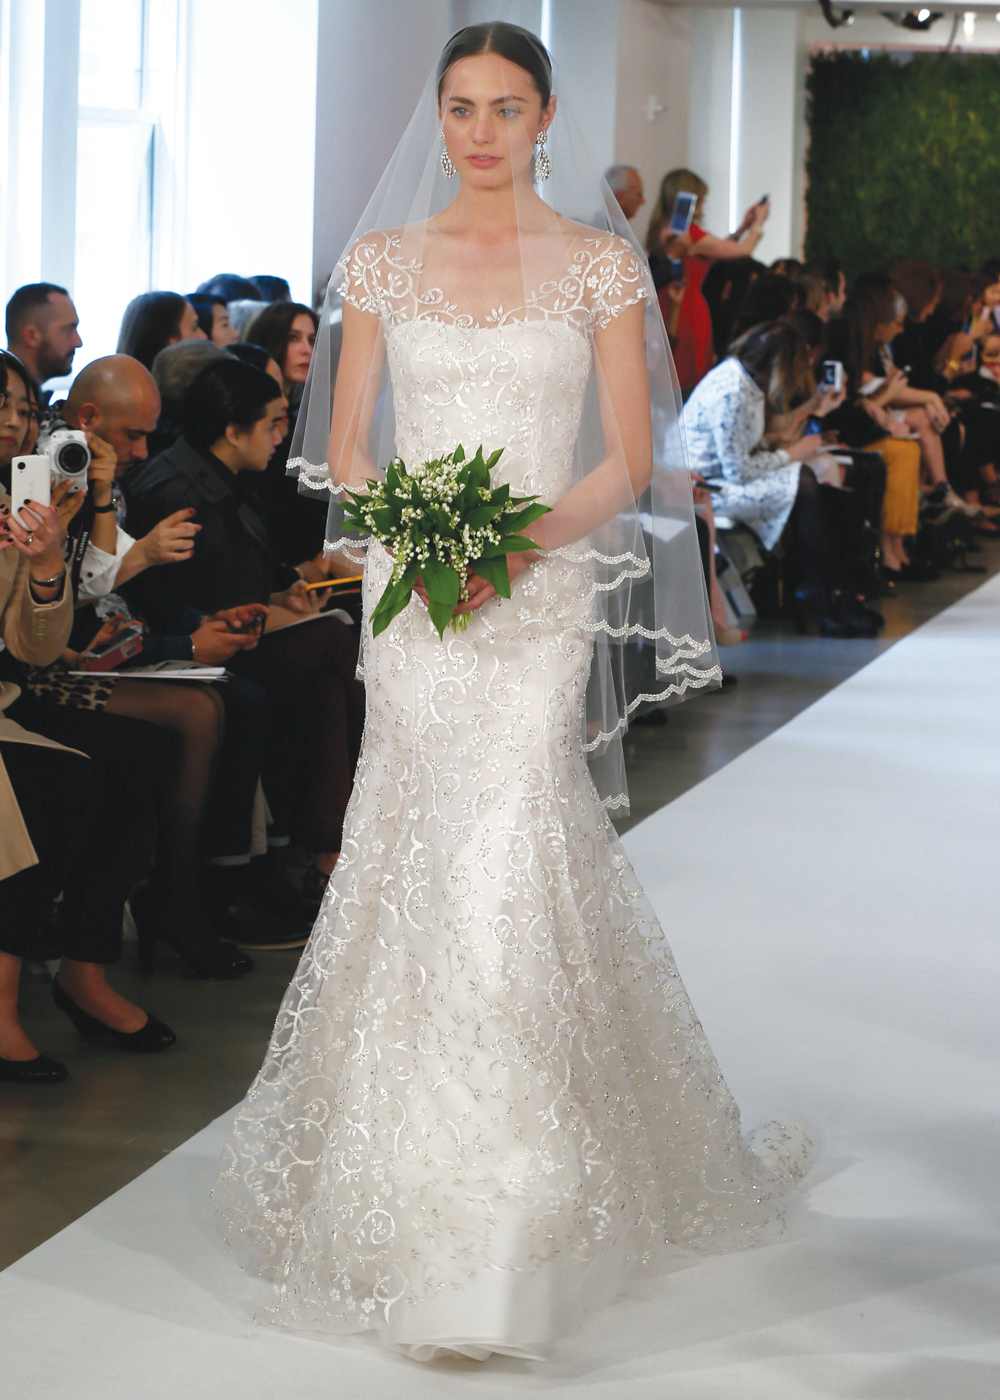 Oscar de la renta classic vintage fit to flare wedding gown for Wedding dress rental manhattan